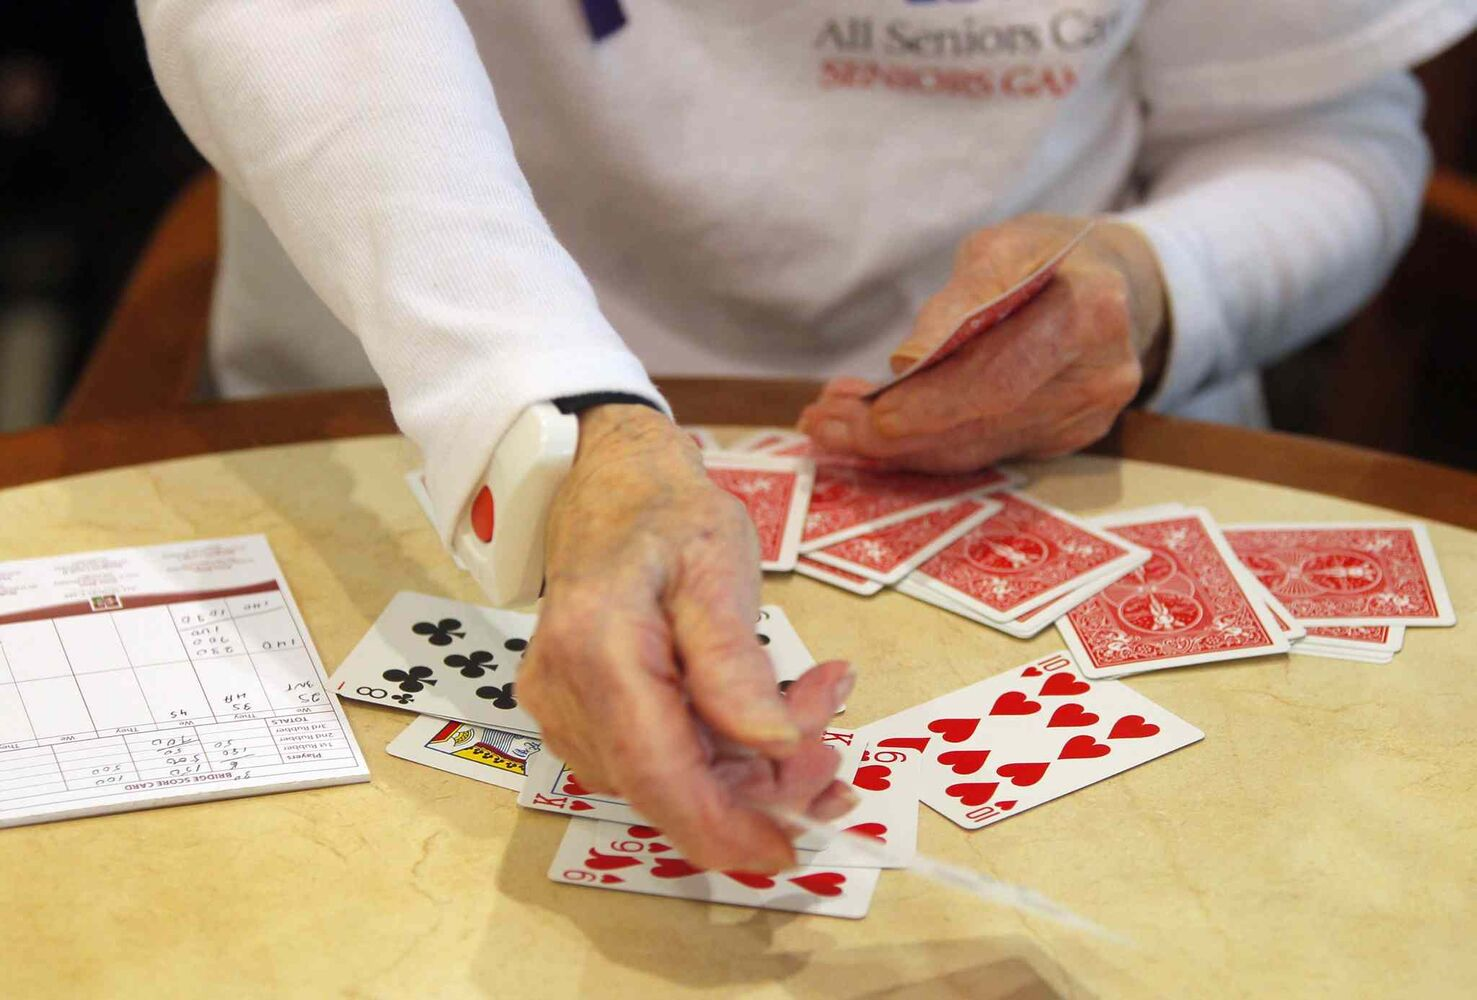 Residents at Shaftesbury Park Retirement Residence are taking part in the All Senior Care Games 2014 this week. It's the fifth year for the games, which see Seniors play bridge, Wii bowling, bocce and shuffleboard. Open ceremonies were Monday and the games end Friday.